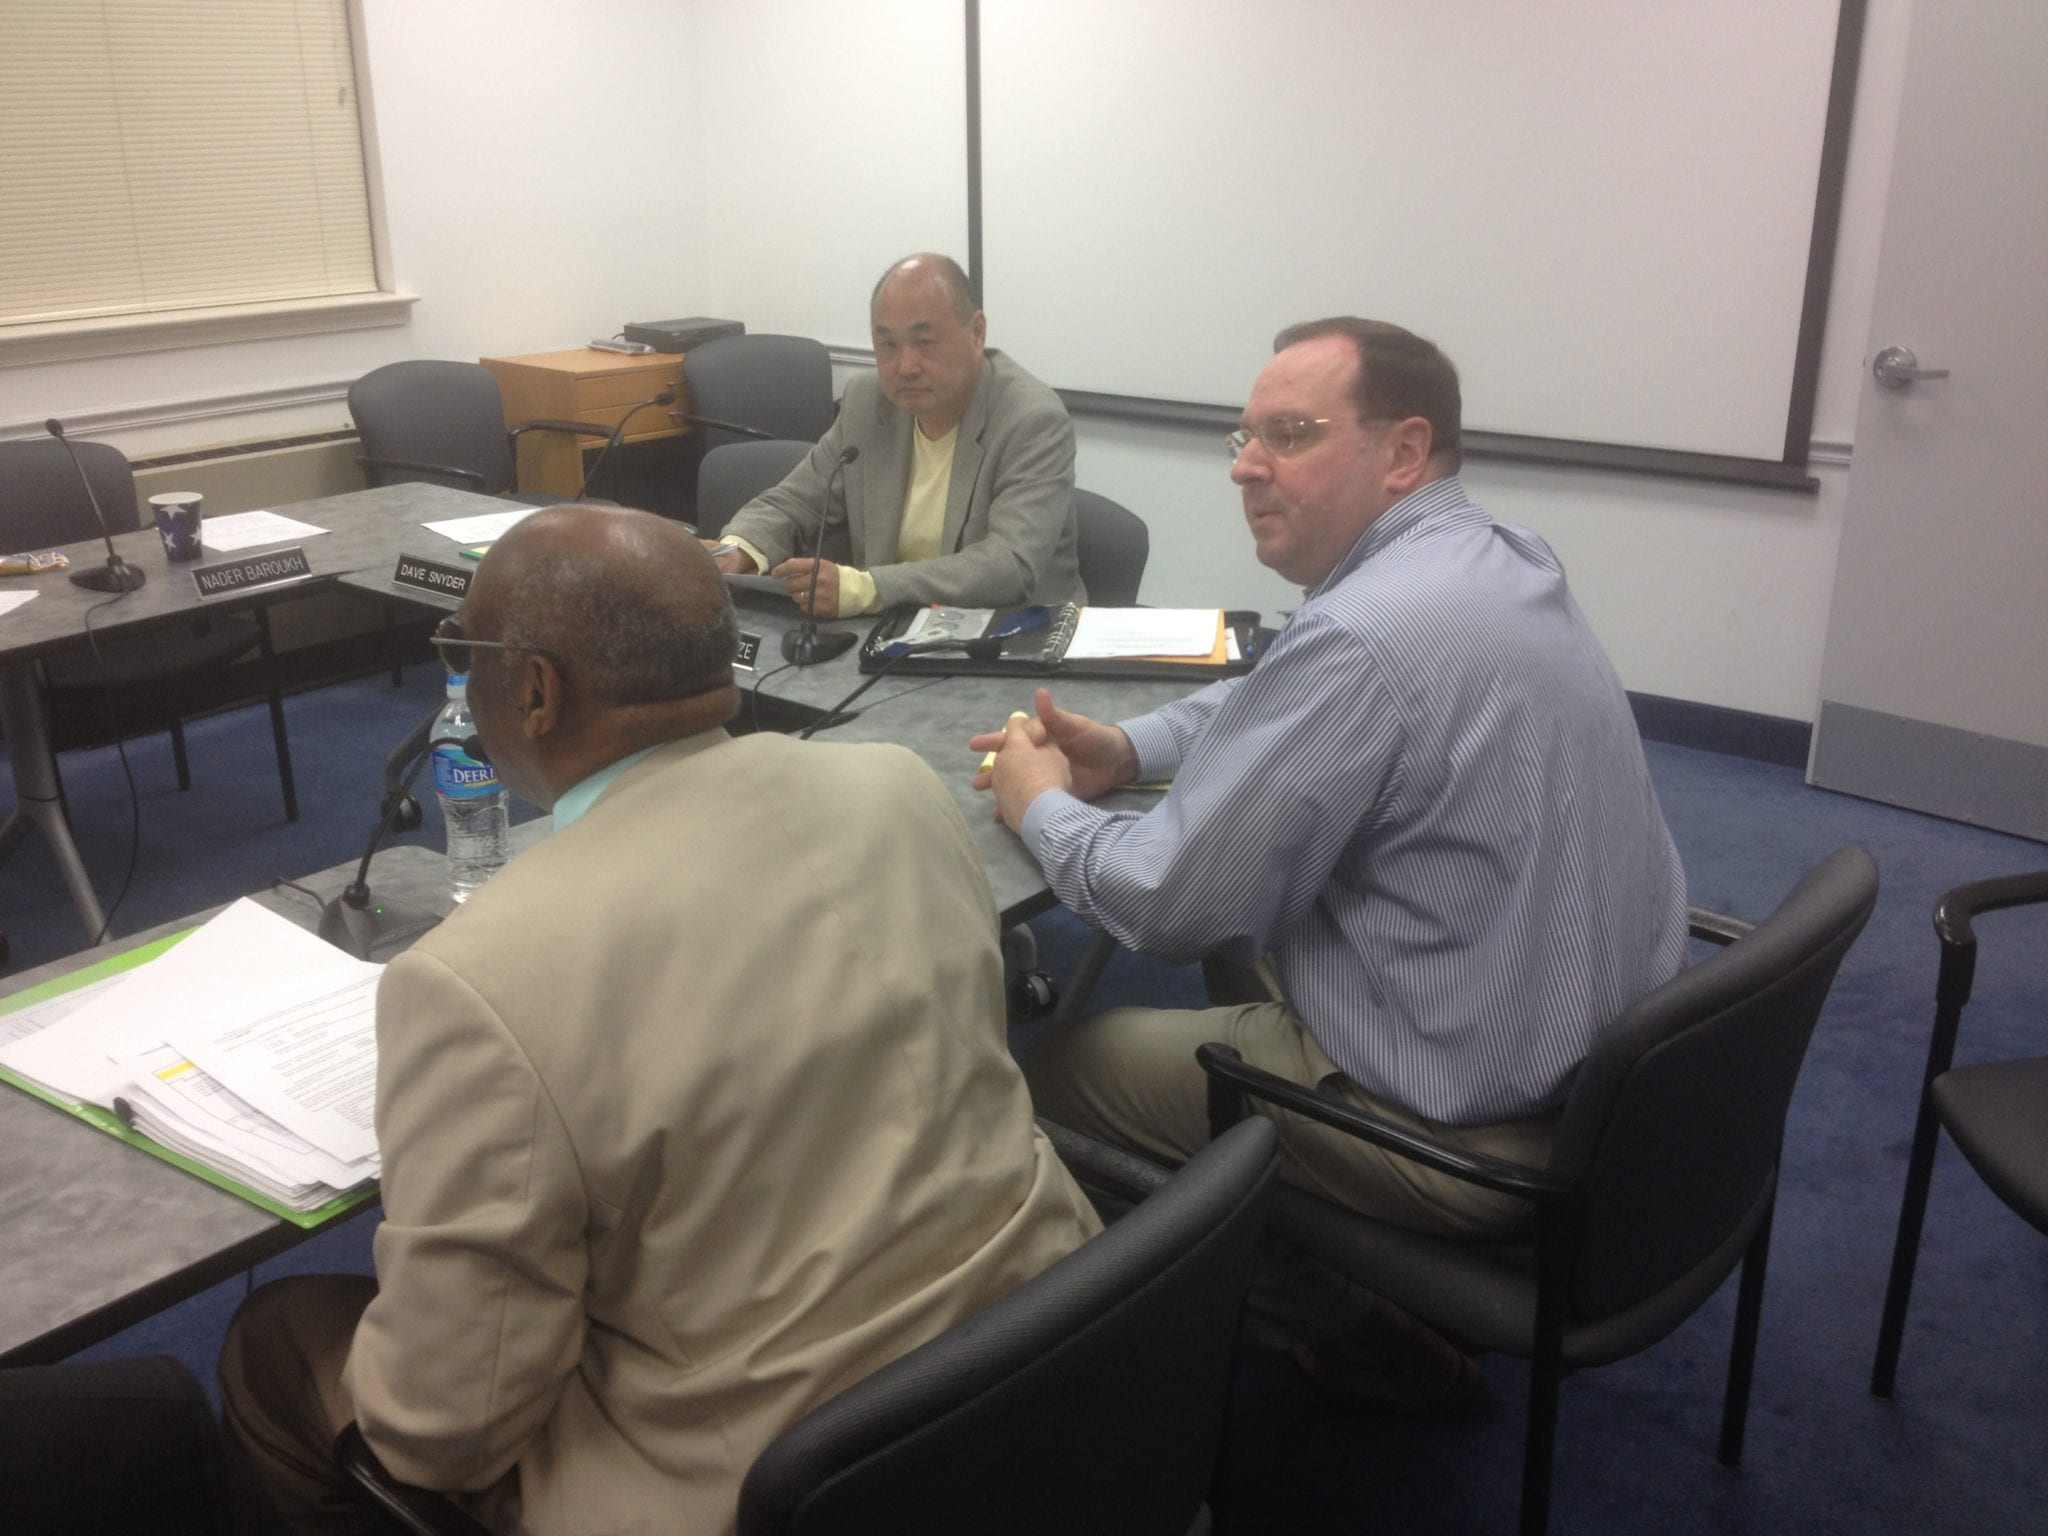 CHIEF FINANCIAL OFFICERS for the City of Falls Church, Richard LaCondre (left) and Hunter Kimble (right) took on the City Council's concerns for finding ways to lower the proposed tax rate increase tonight. (Photo: News-Press)